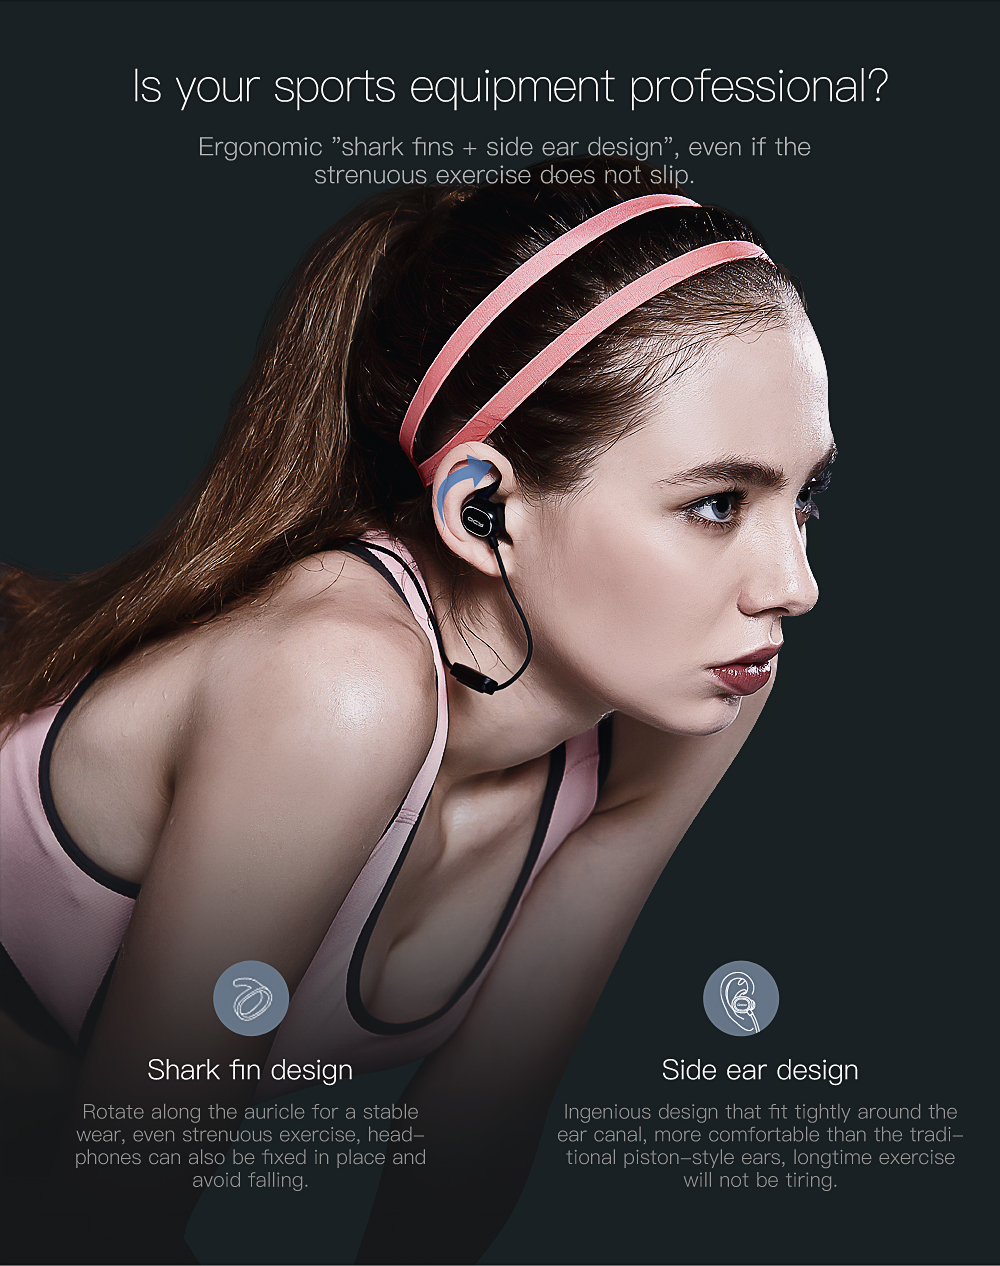 QCY QY19 IPX4-rated sweatproof headphones QCY QY19 IPX4-rated sweatproof headphones HTB1owJjRpXXXXcpXVXXq6xXFXXXe